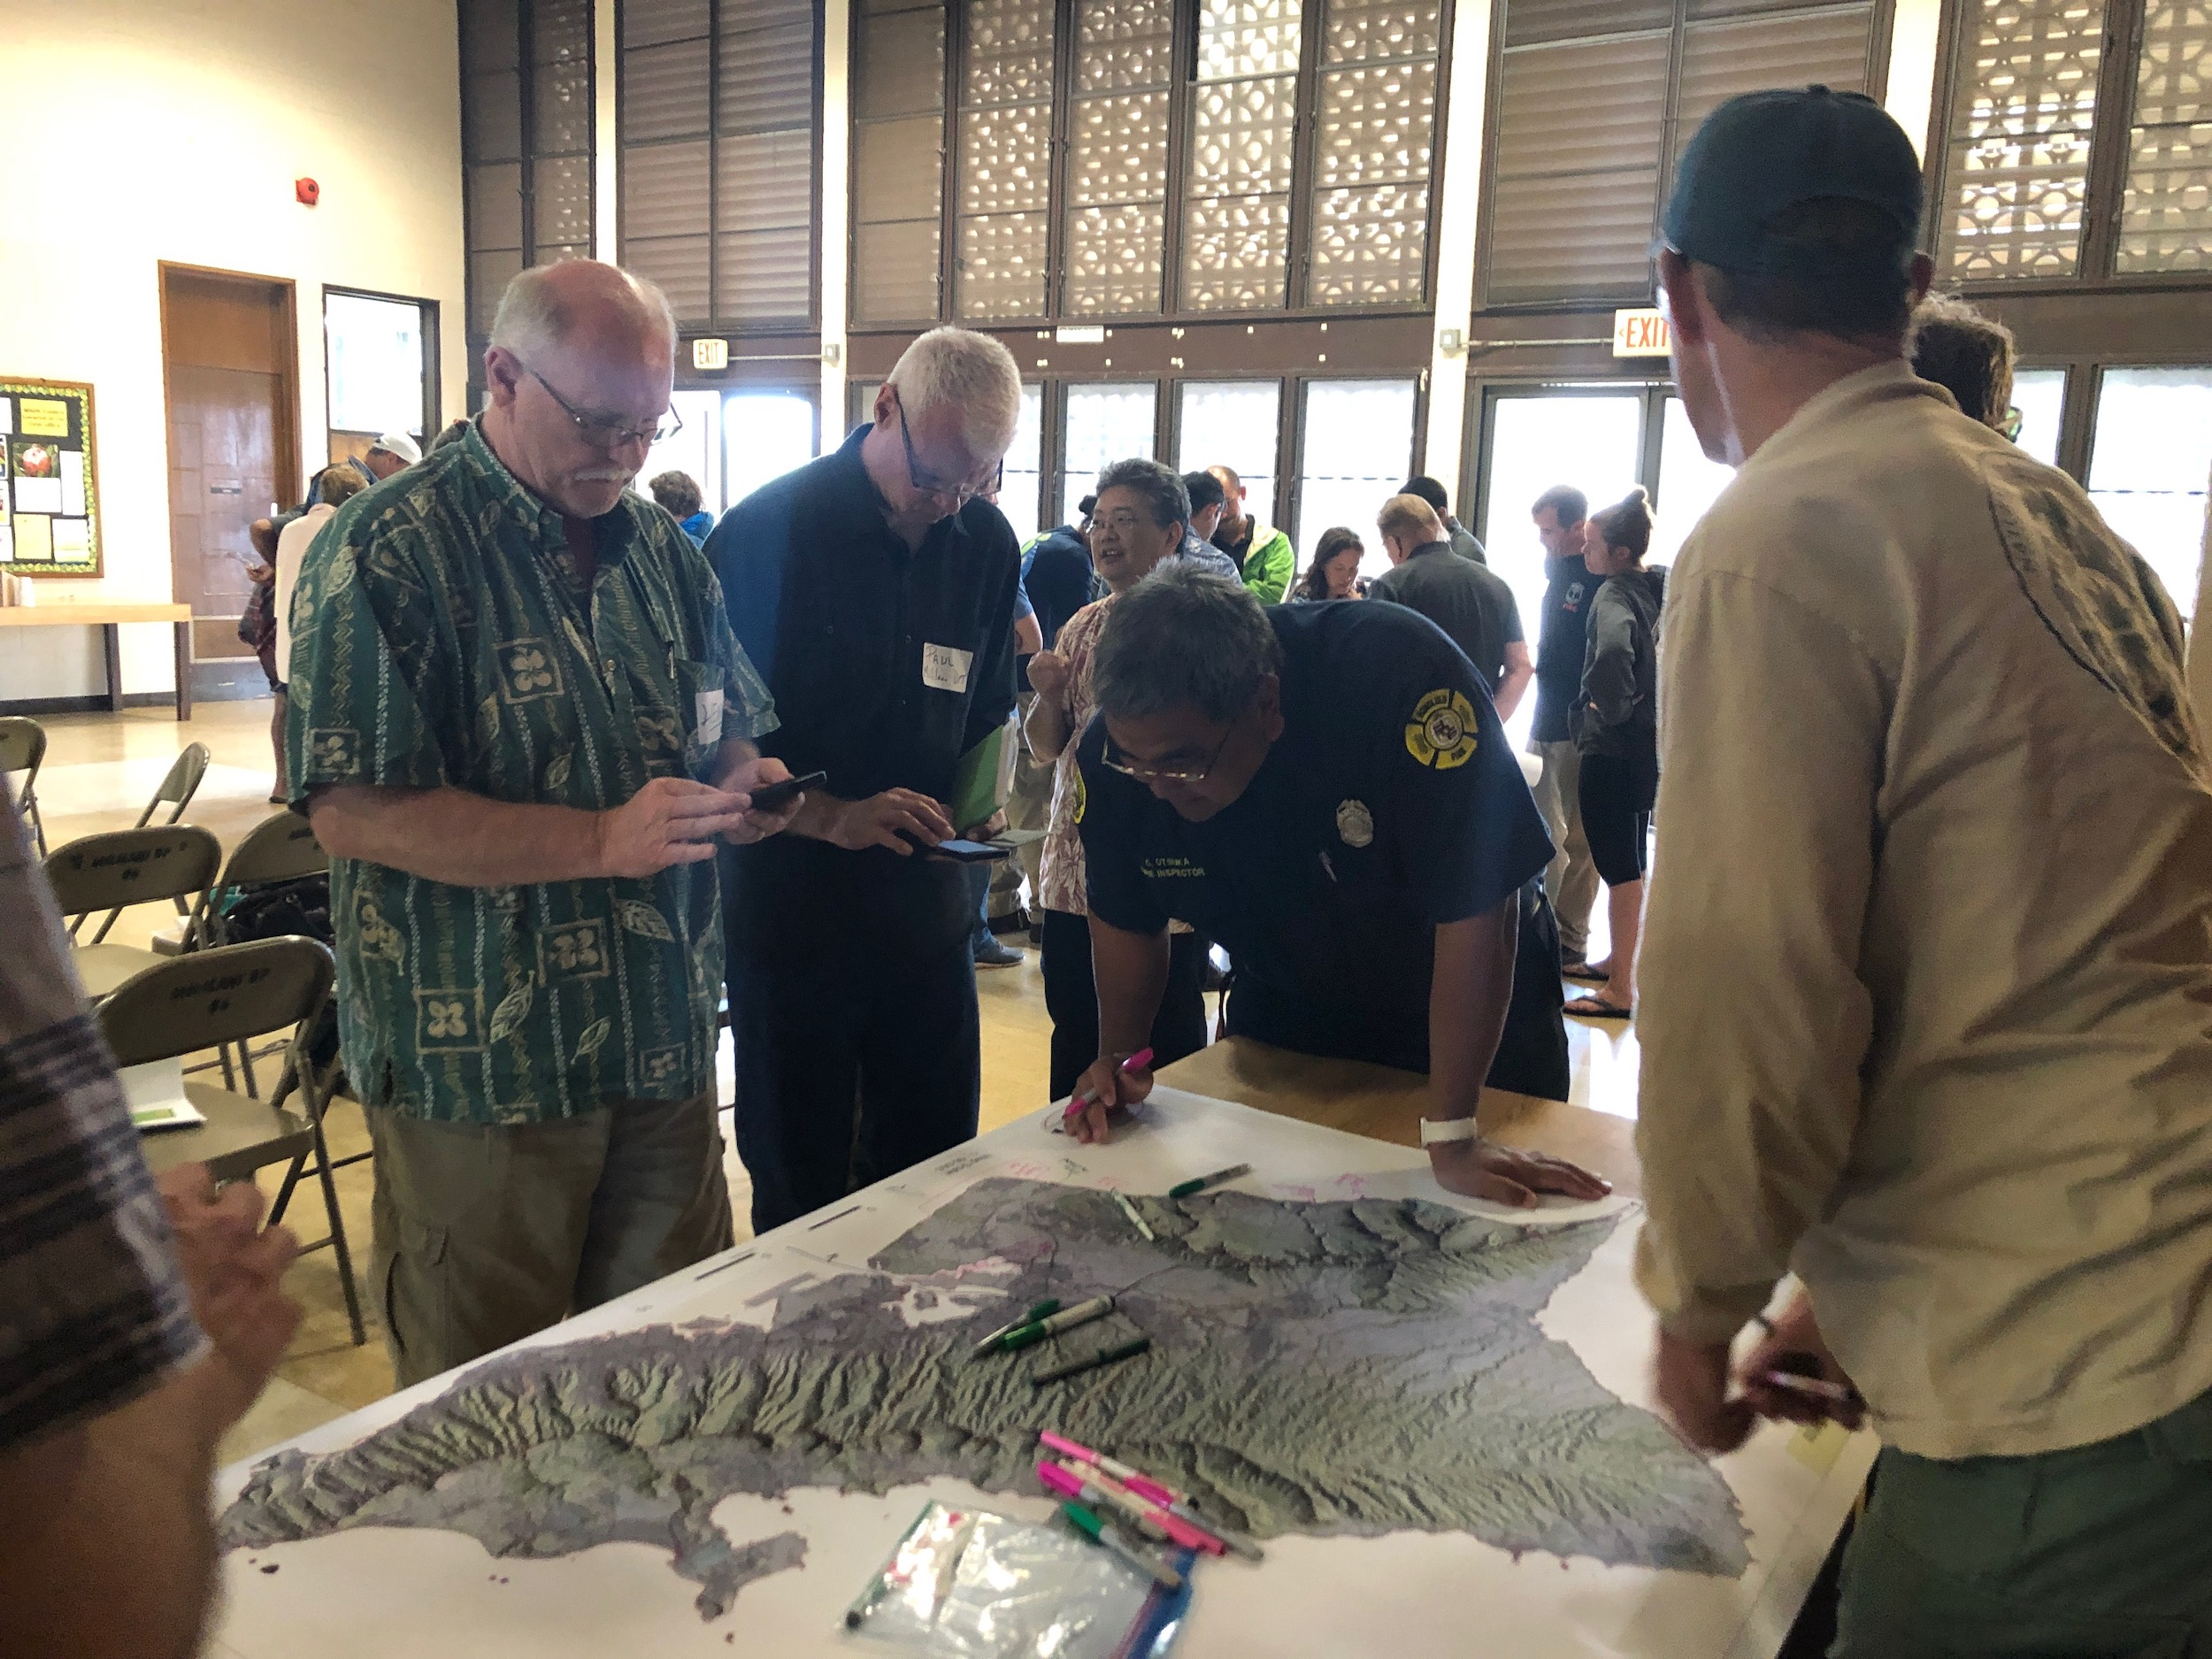 Oahu Vegetative Fuels Management Collaborative Action Planning Workshop_2_19_2019_16.jpg